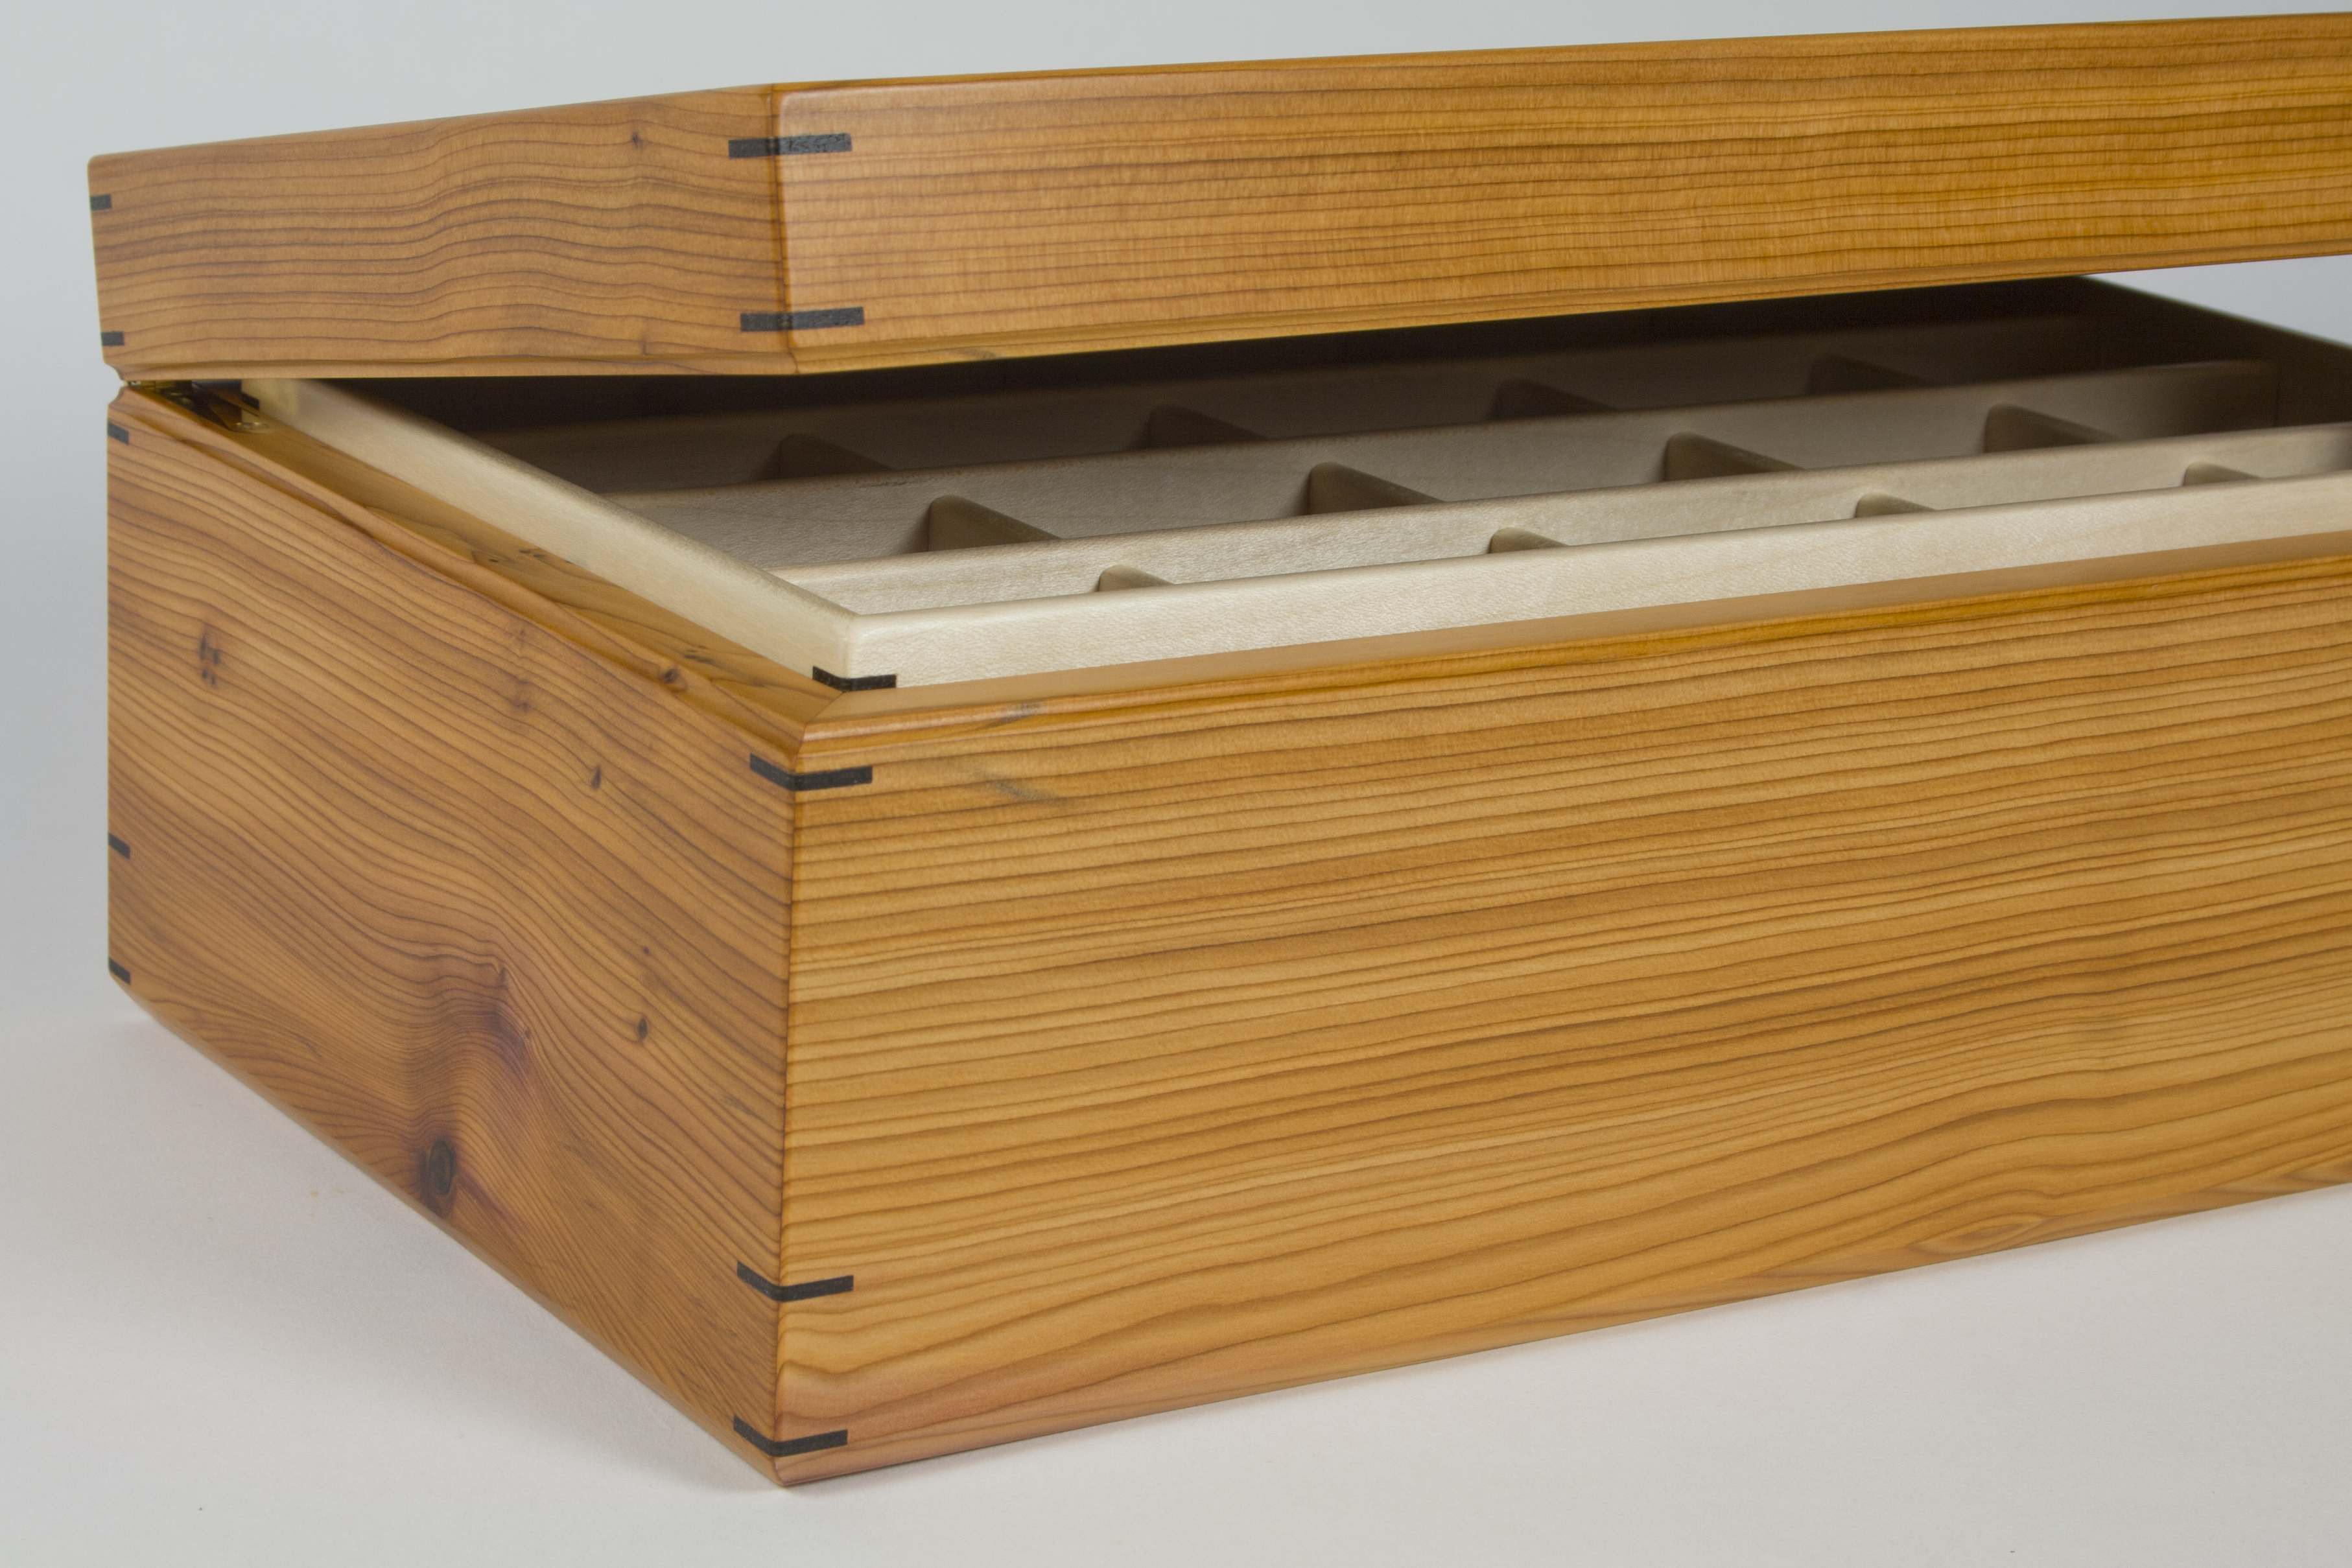 Yew jewellery box with lid just open